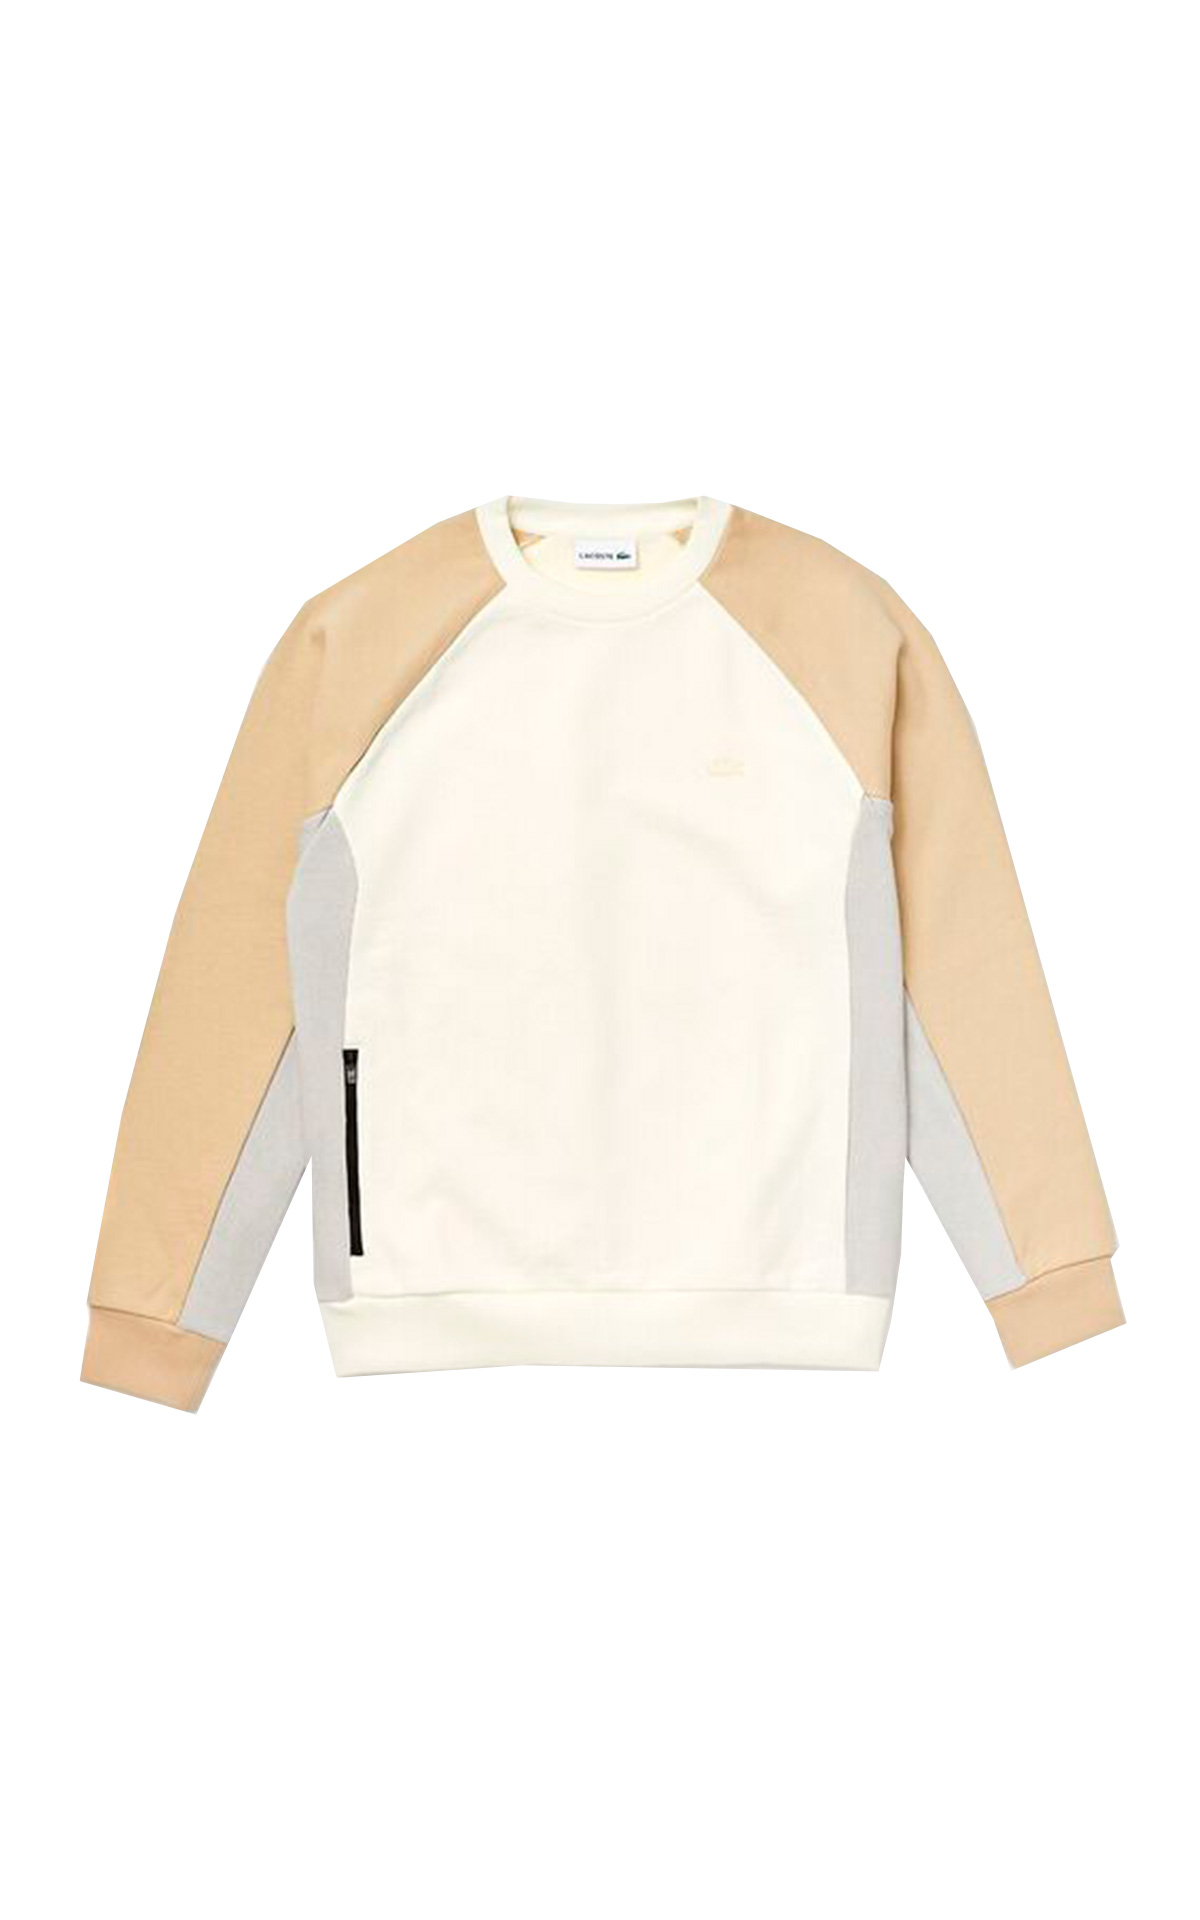 Beige and white sweatshirt Lacoste